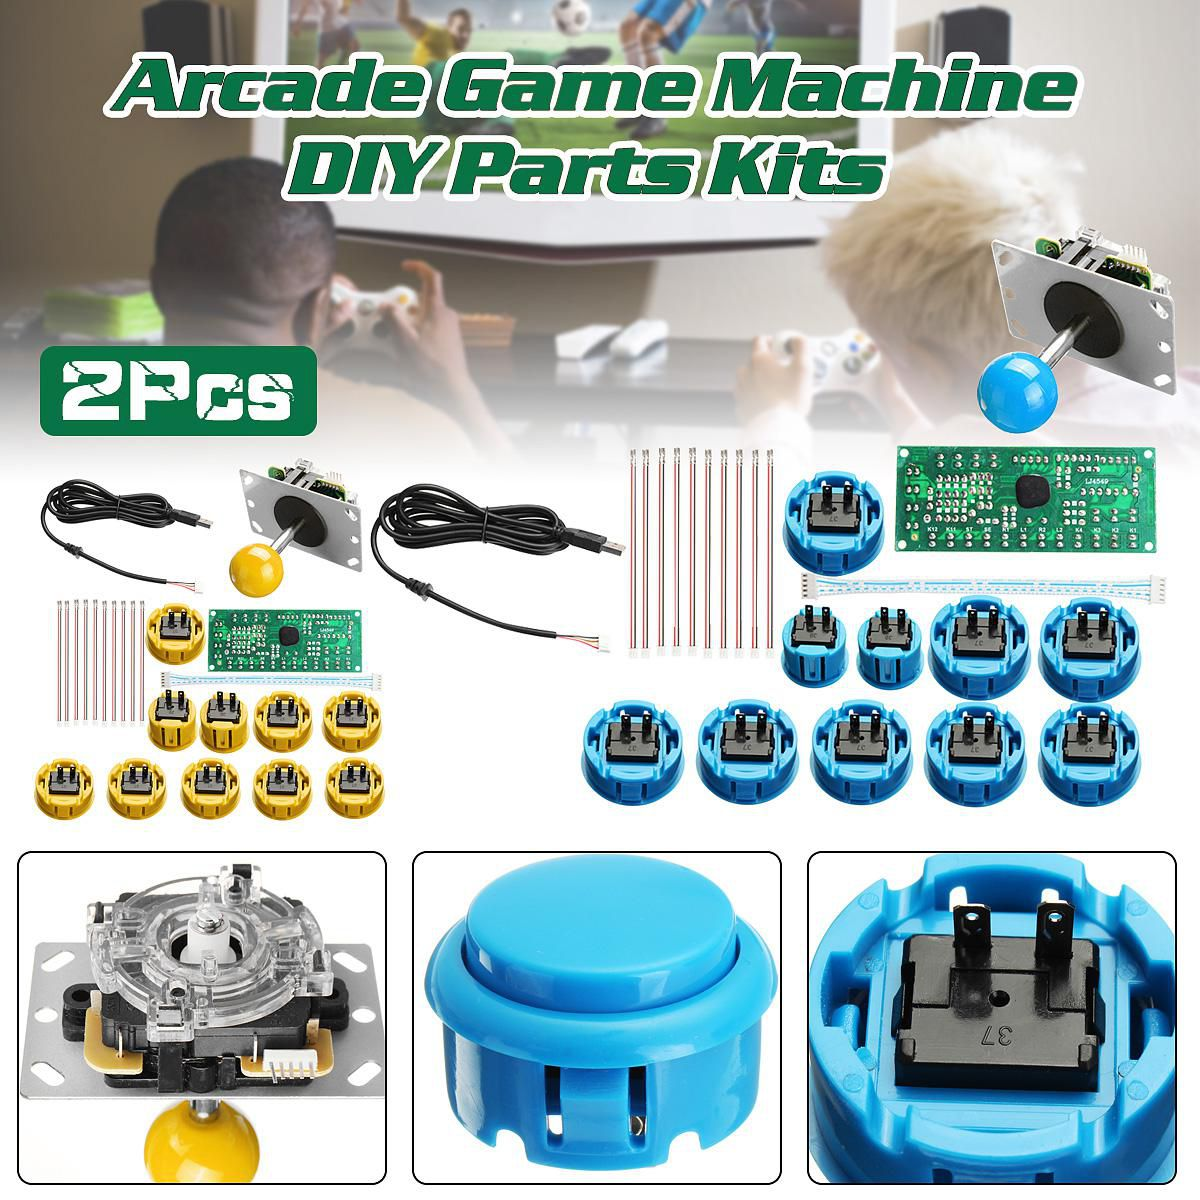 2pcs Arcade Mame Game DIY Kit Parts Push Buttons + Joysticks + USB Encoders